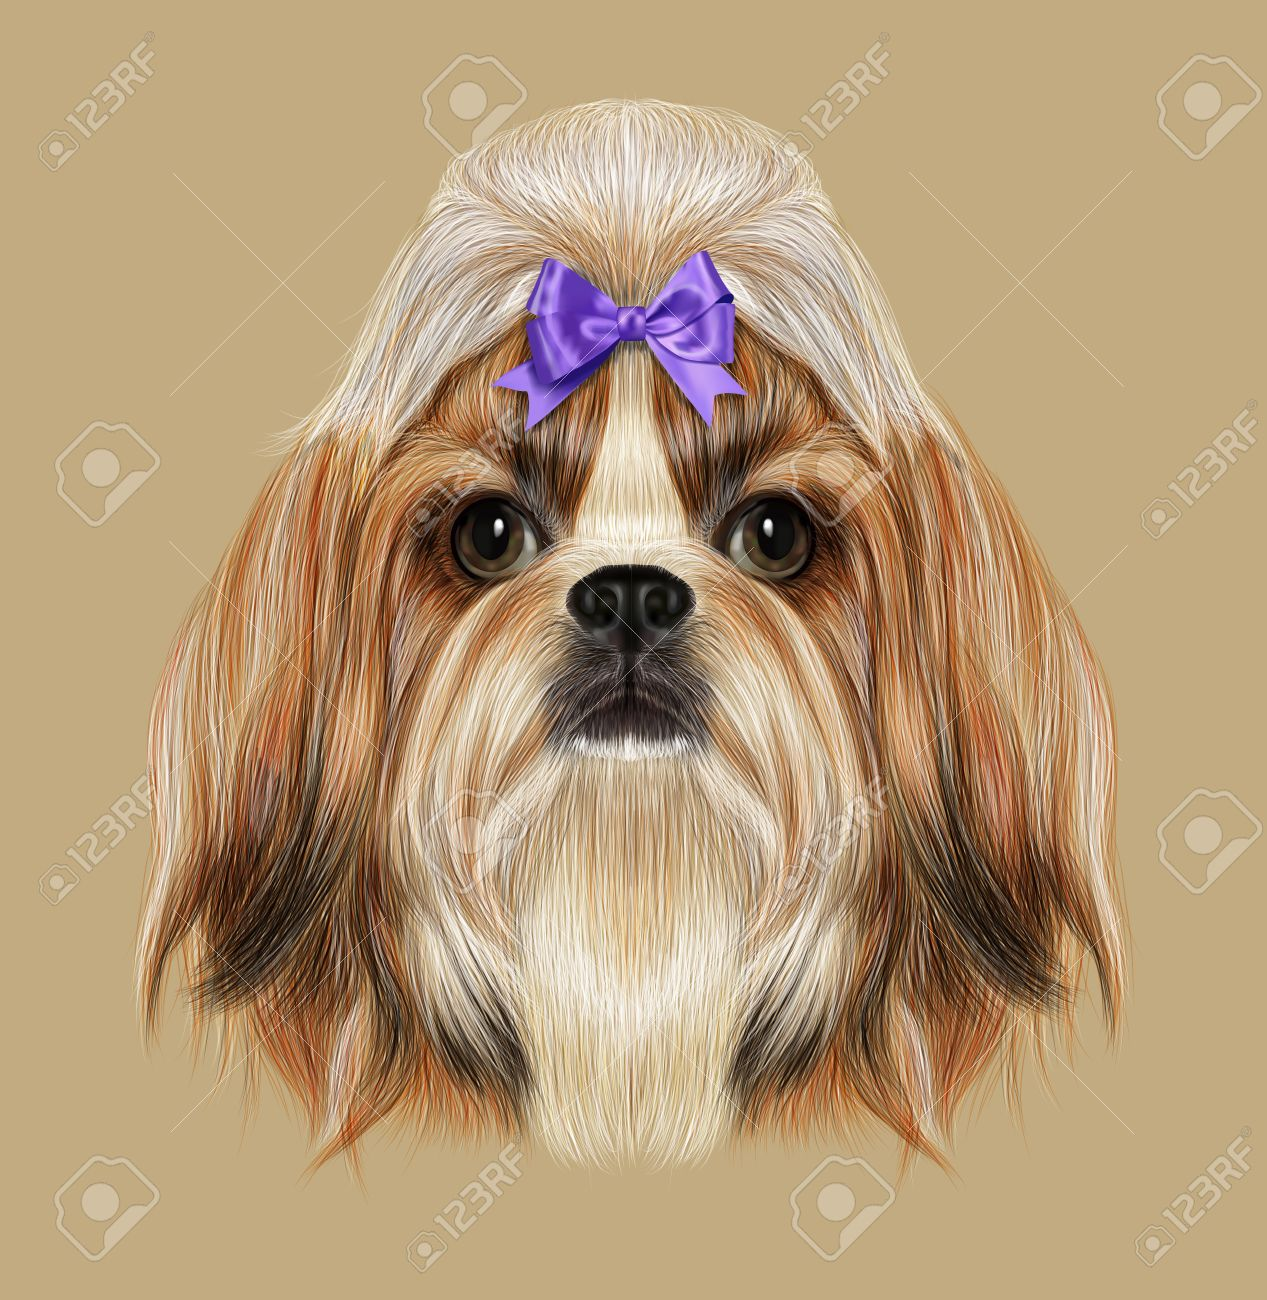 Illustrated Portrait Of Shih Tzu Dog Domestic Toy Dog Breed